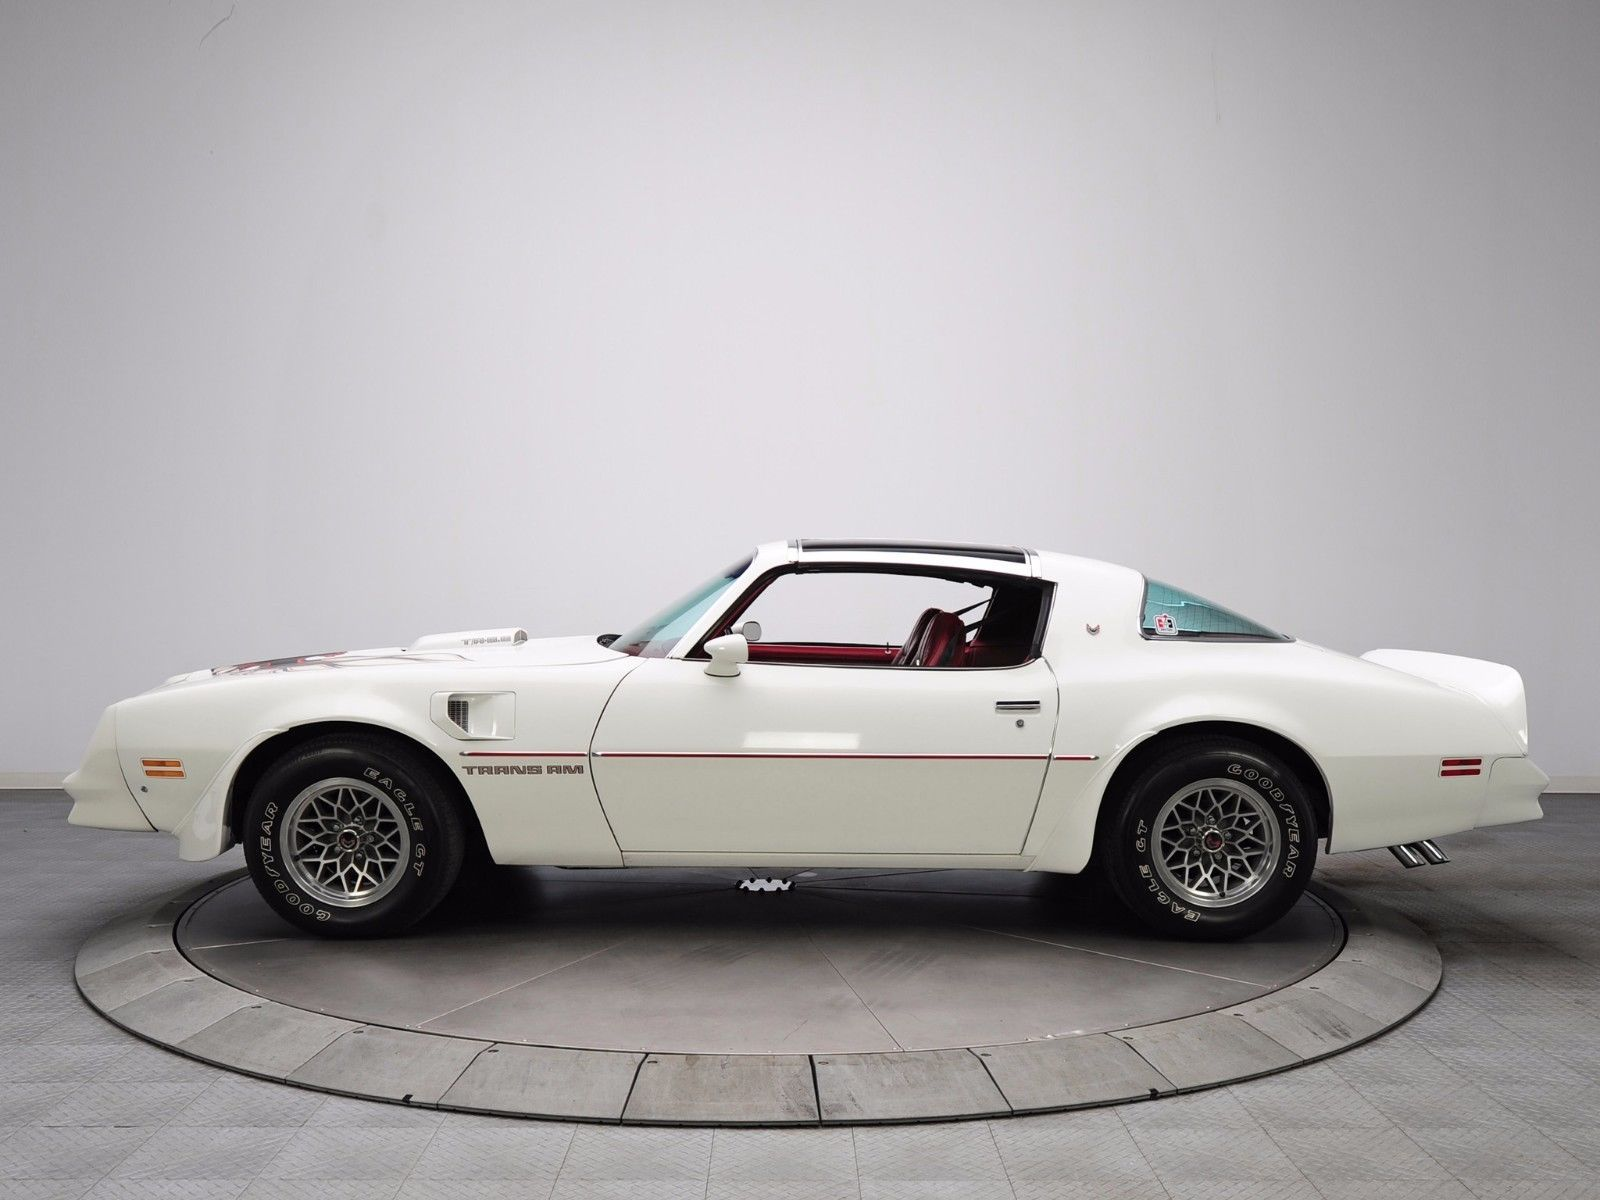 Primary image for 1977 Pontiac Firebird Trans am 023  24 x 36 Inch Poster, formula, 6.6 engine W72